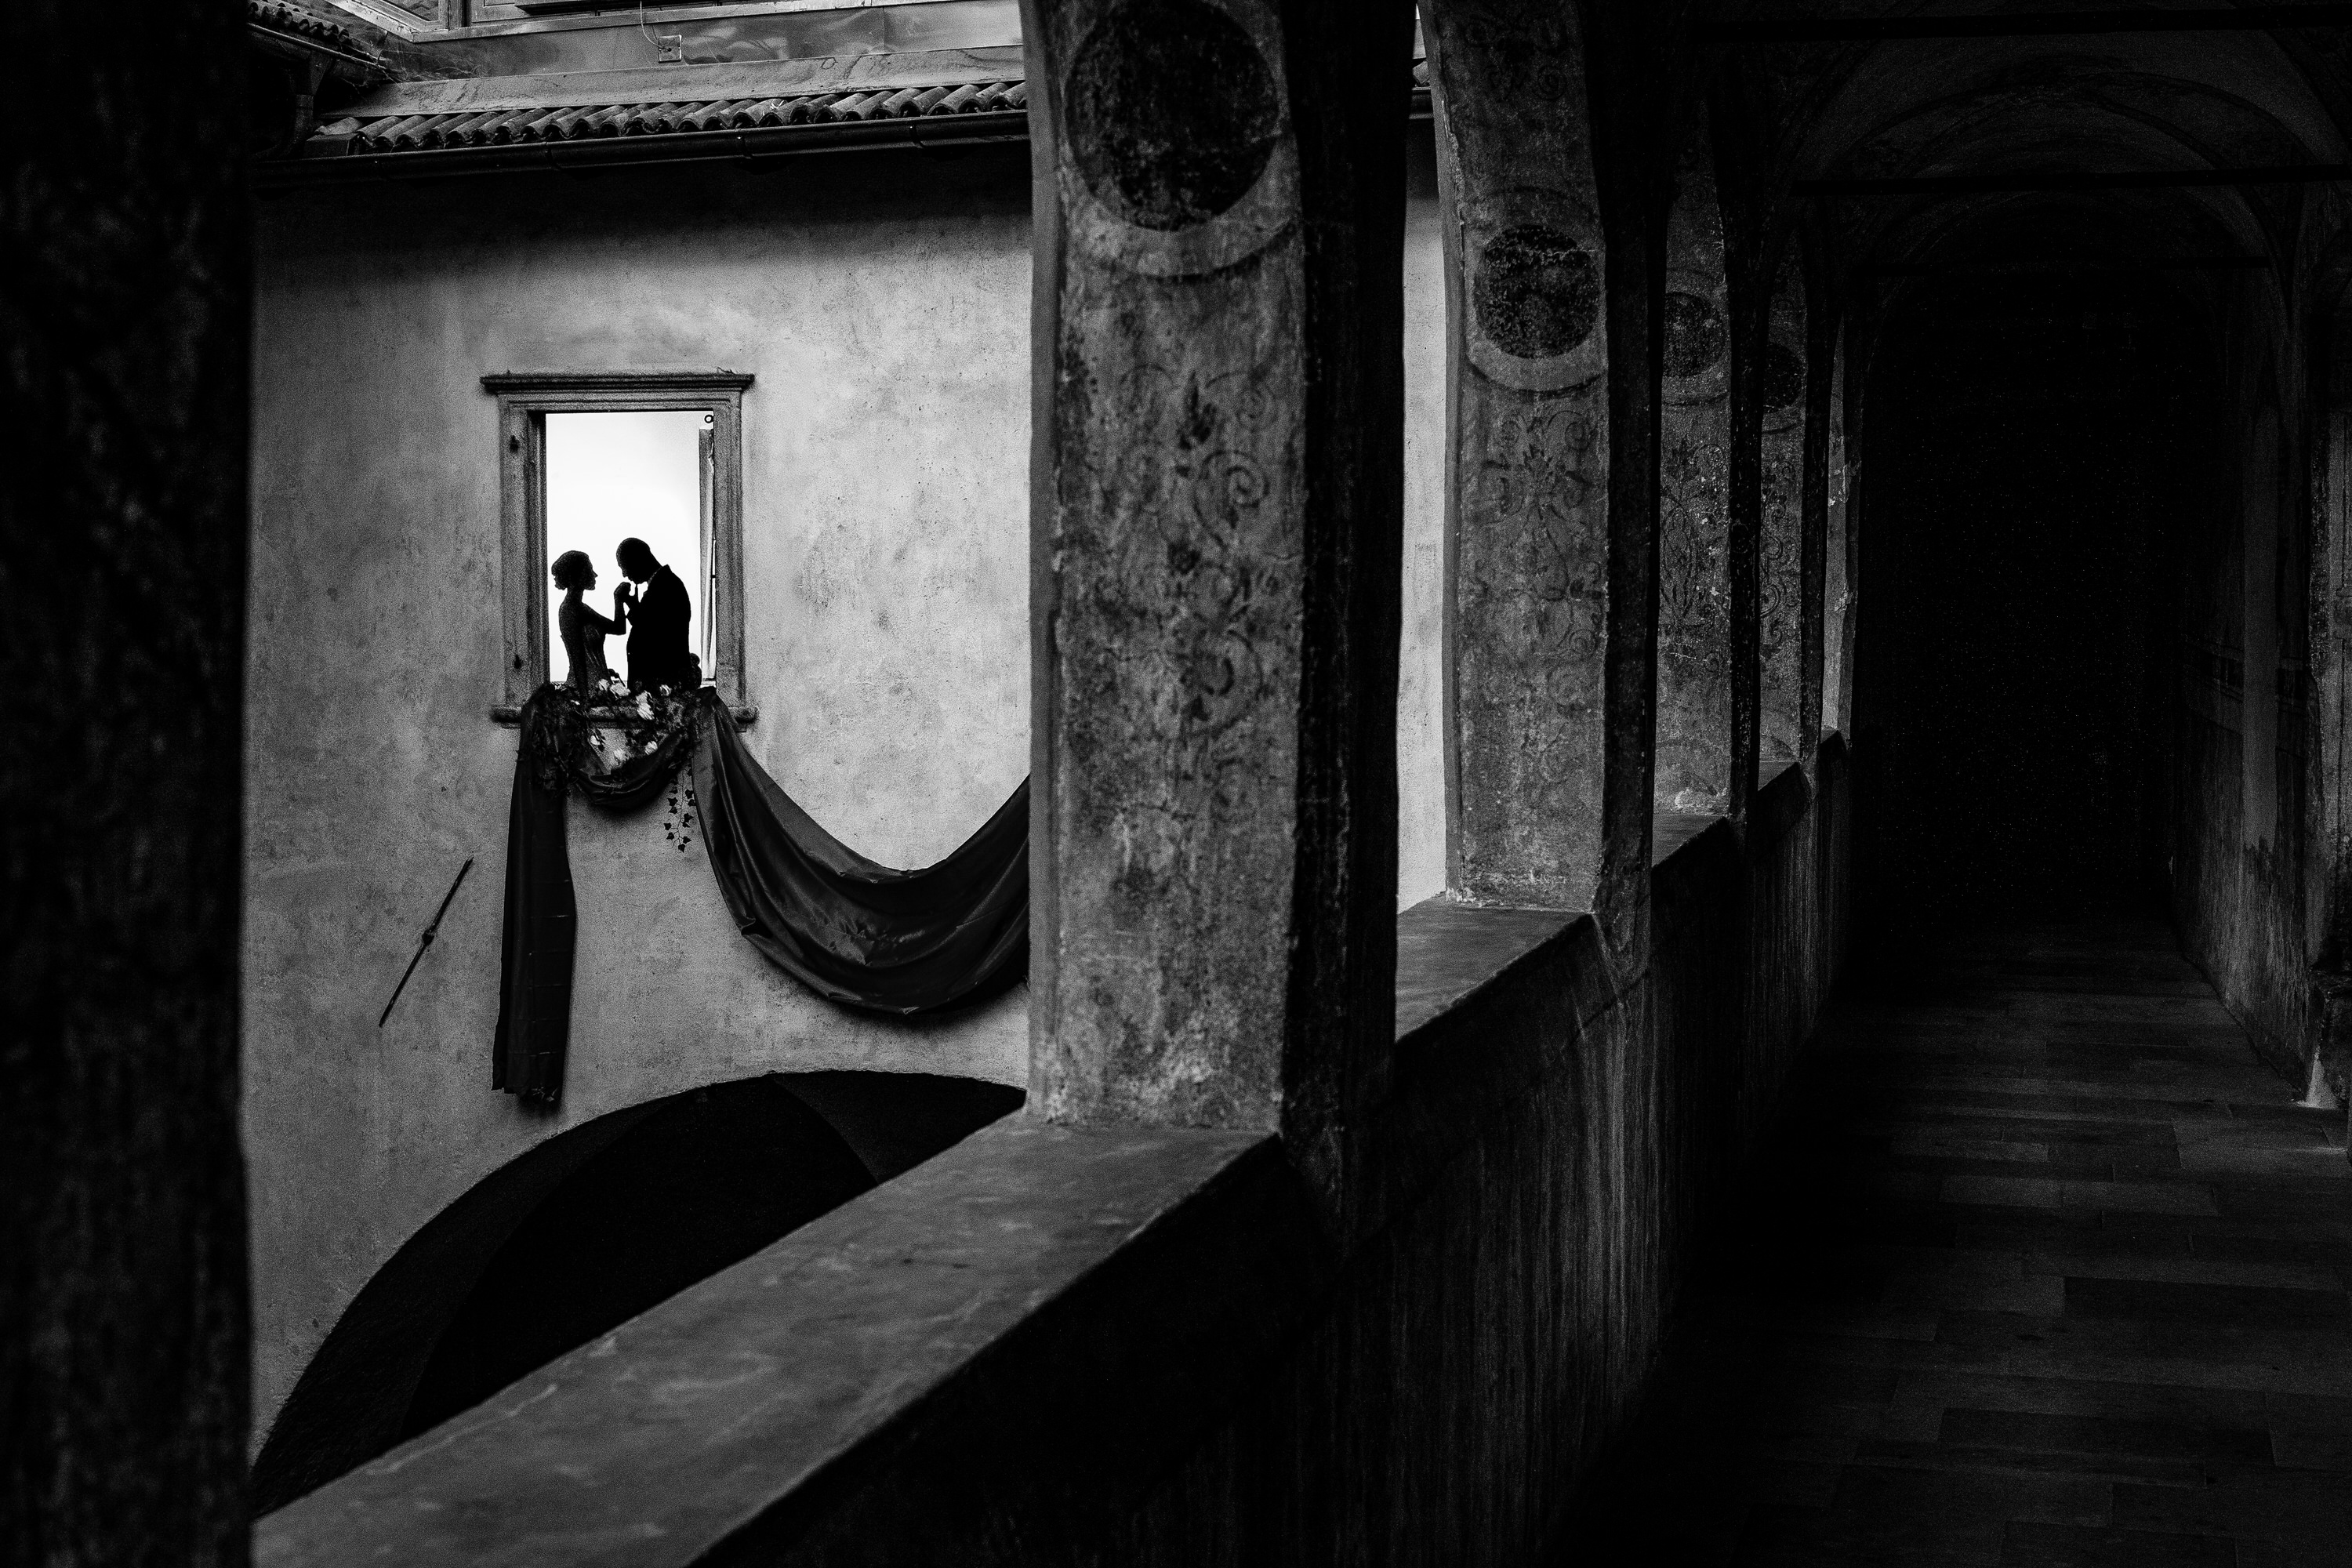 Silhouette couple through window at Castle Mareccio - photo by Luca + Marta Gallizio Photography